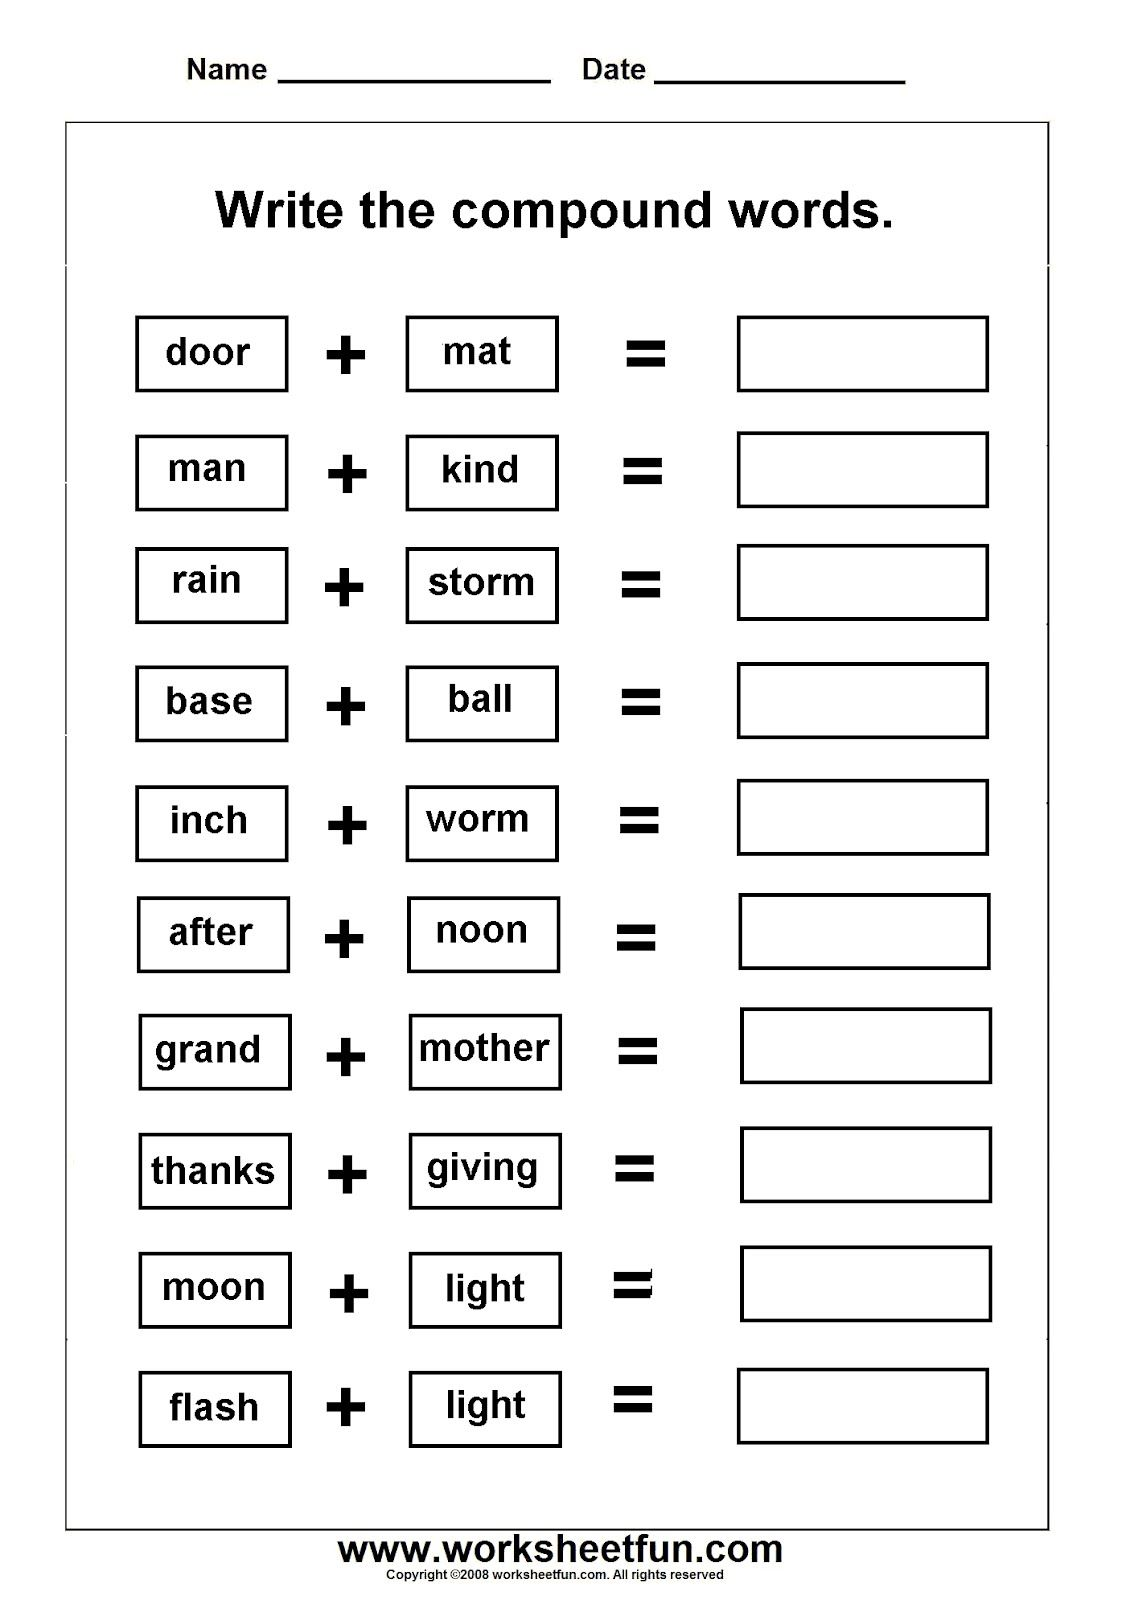 Worksheet Compound Word Activity worksheets on compound words with pictures ela activities pictures